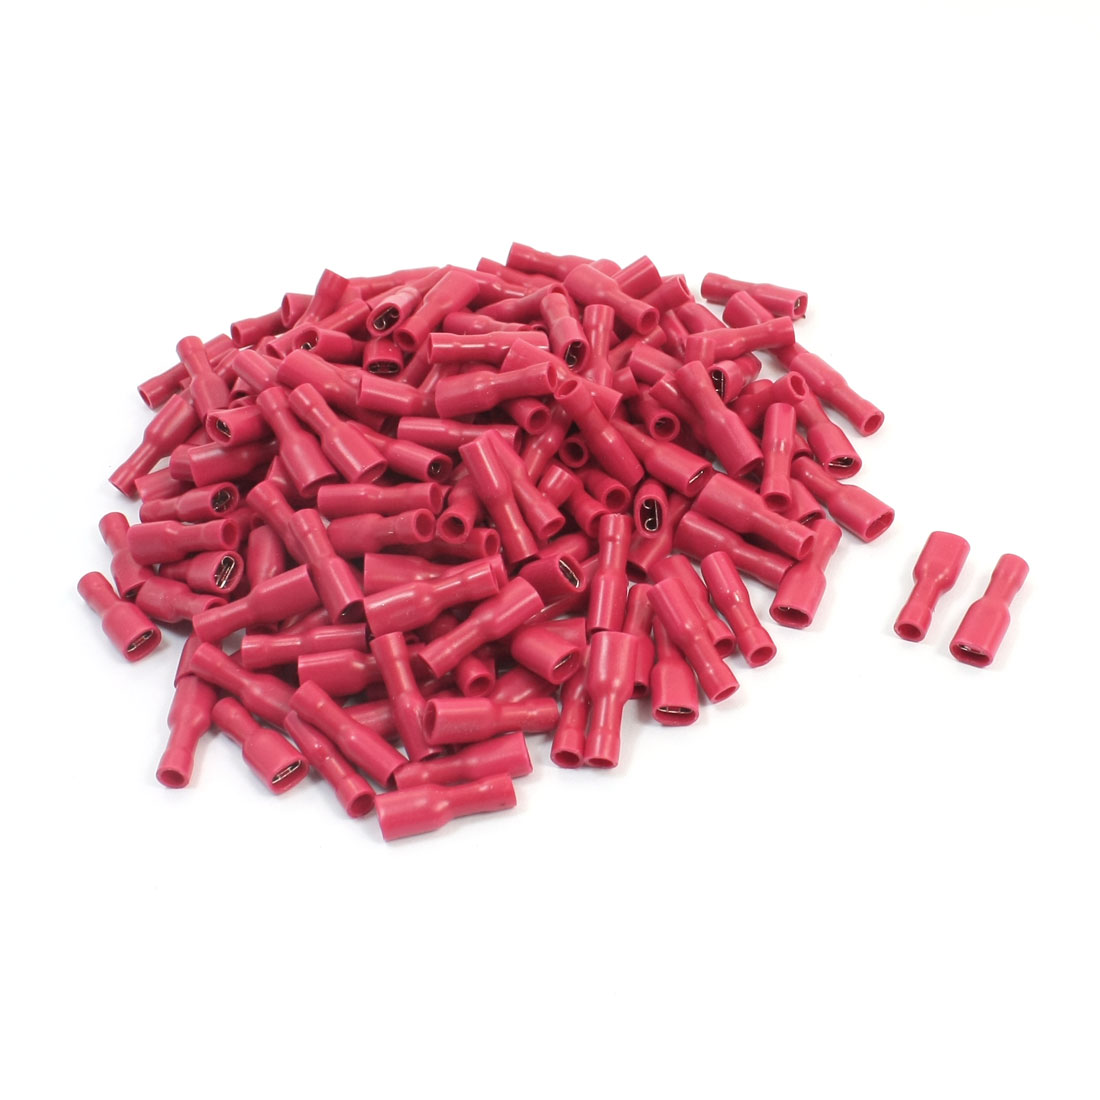 200 Pcs FDFD2-250 22-16AWG Wire Red Plastic Coated Female Spade Connector Push-On Insulated Crimp Terminal